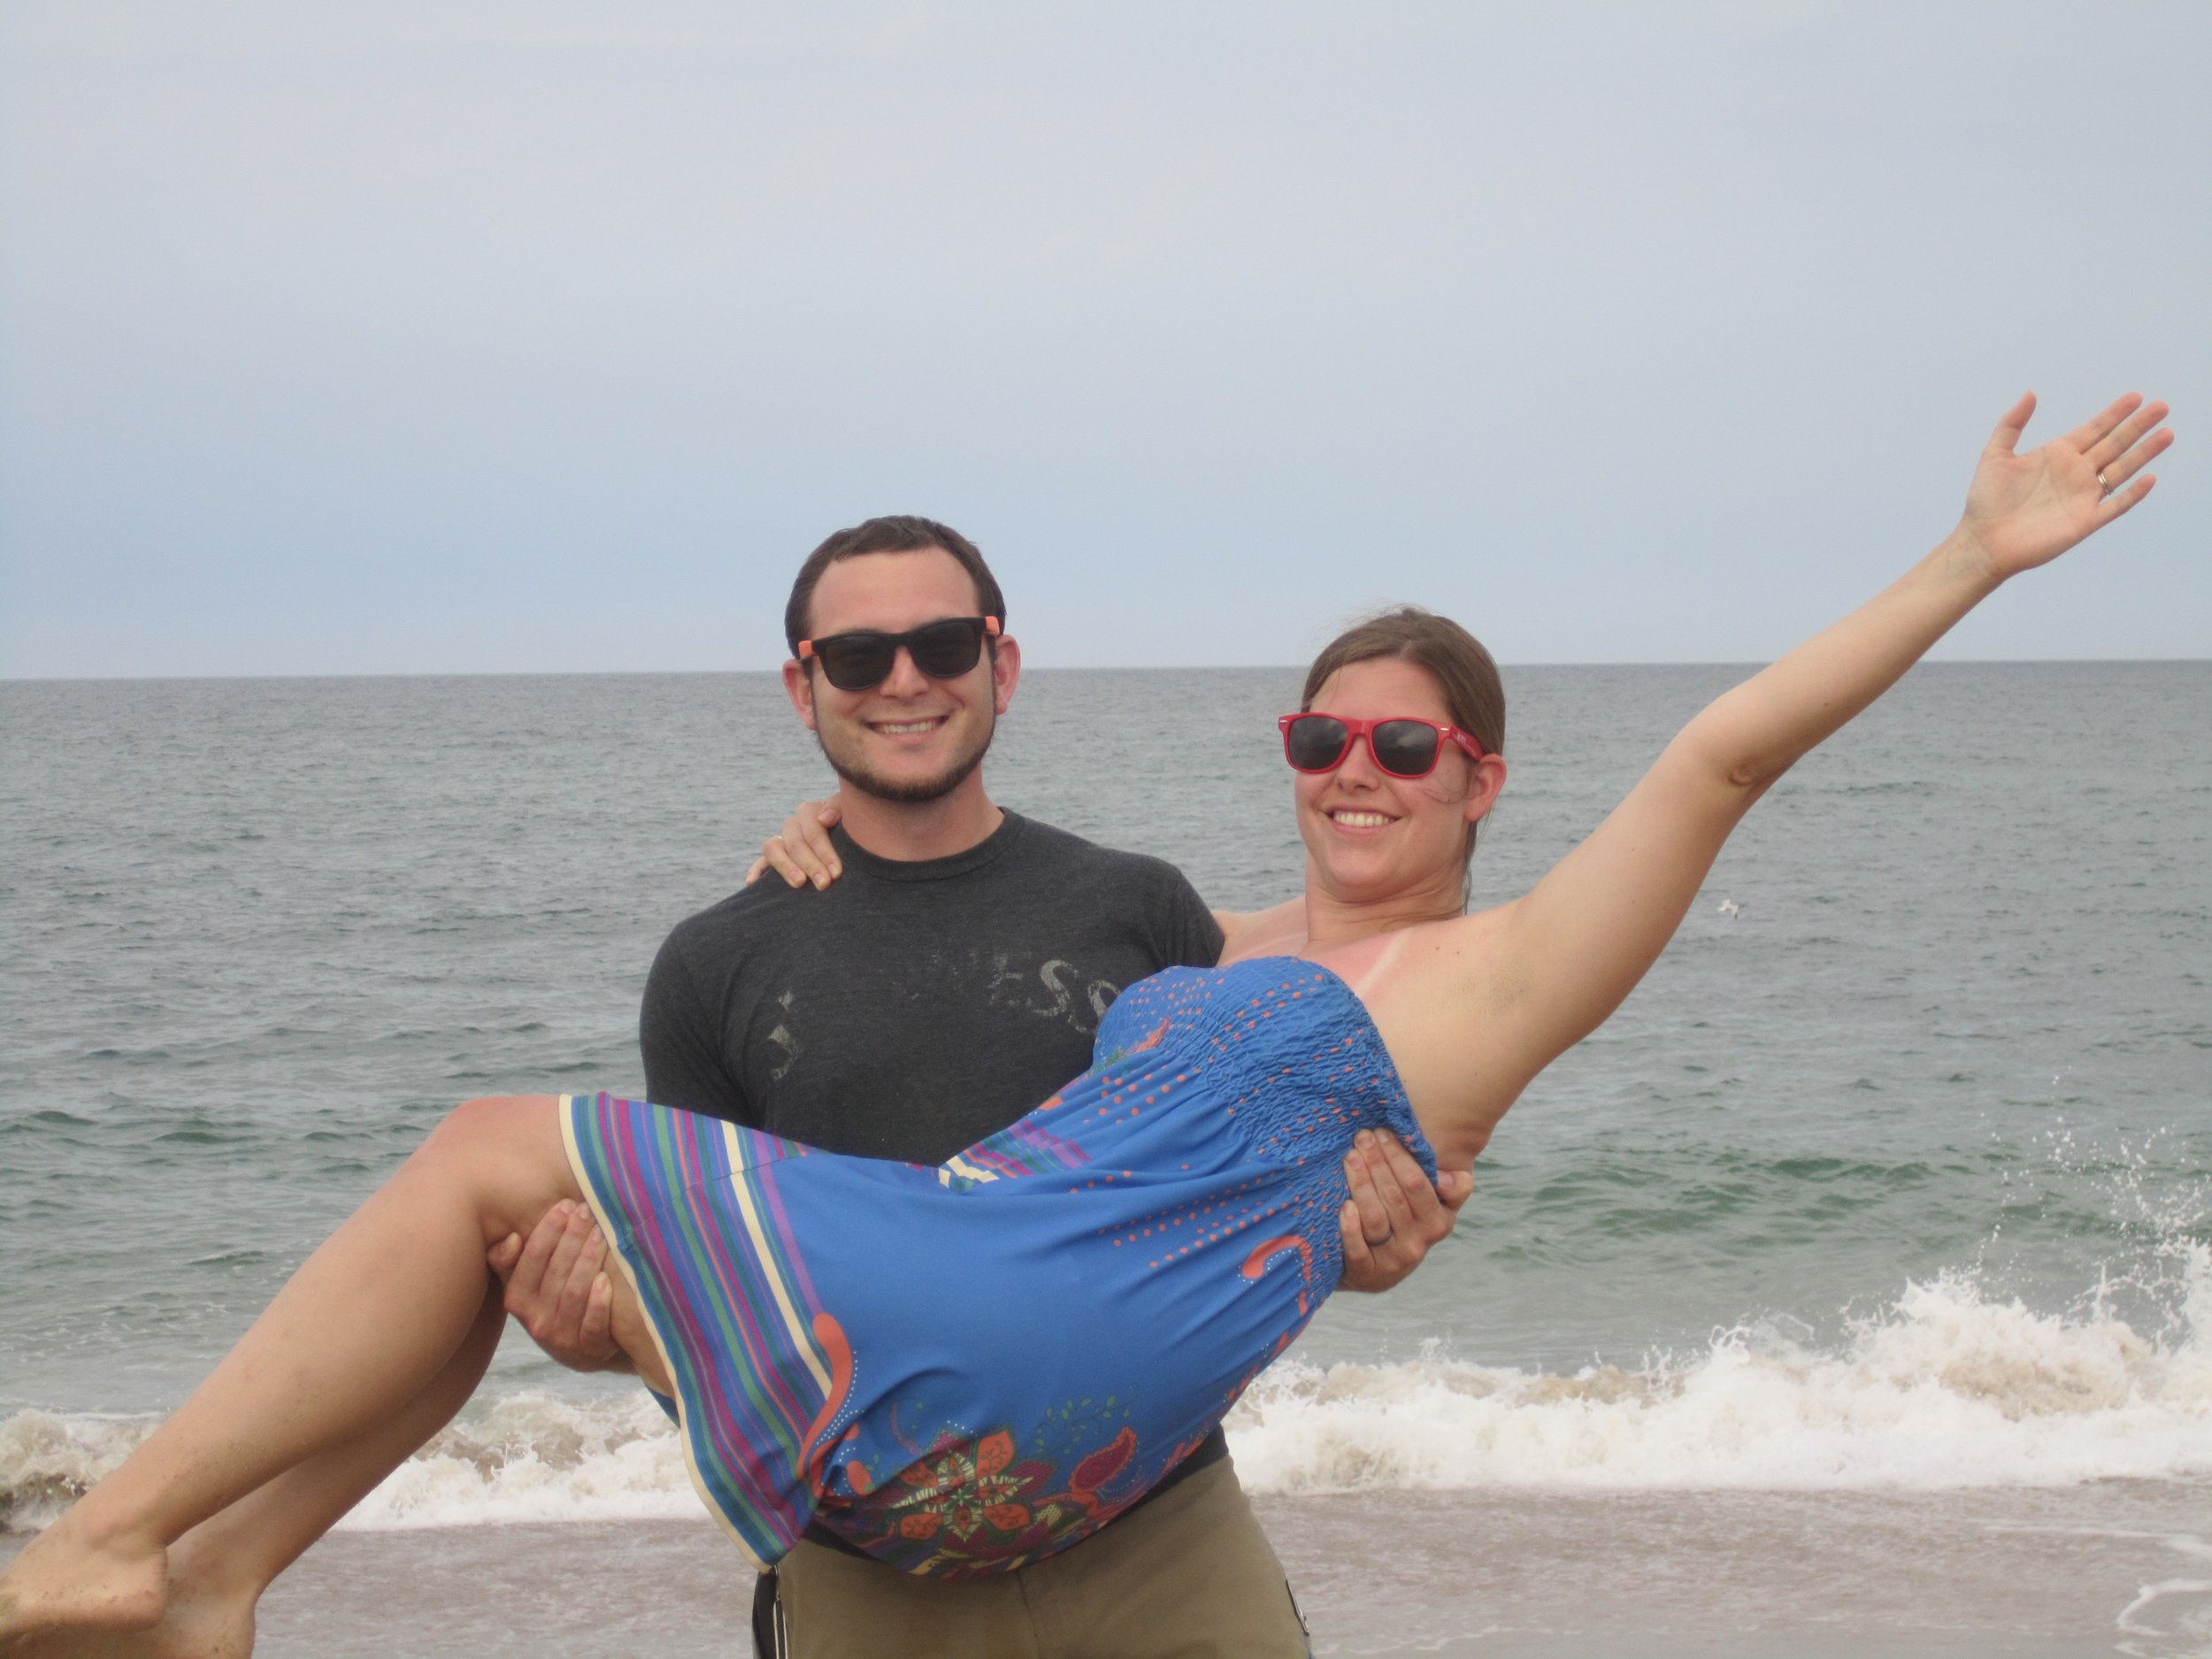 Hanging out in the OBX!